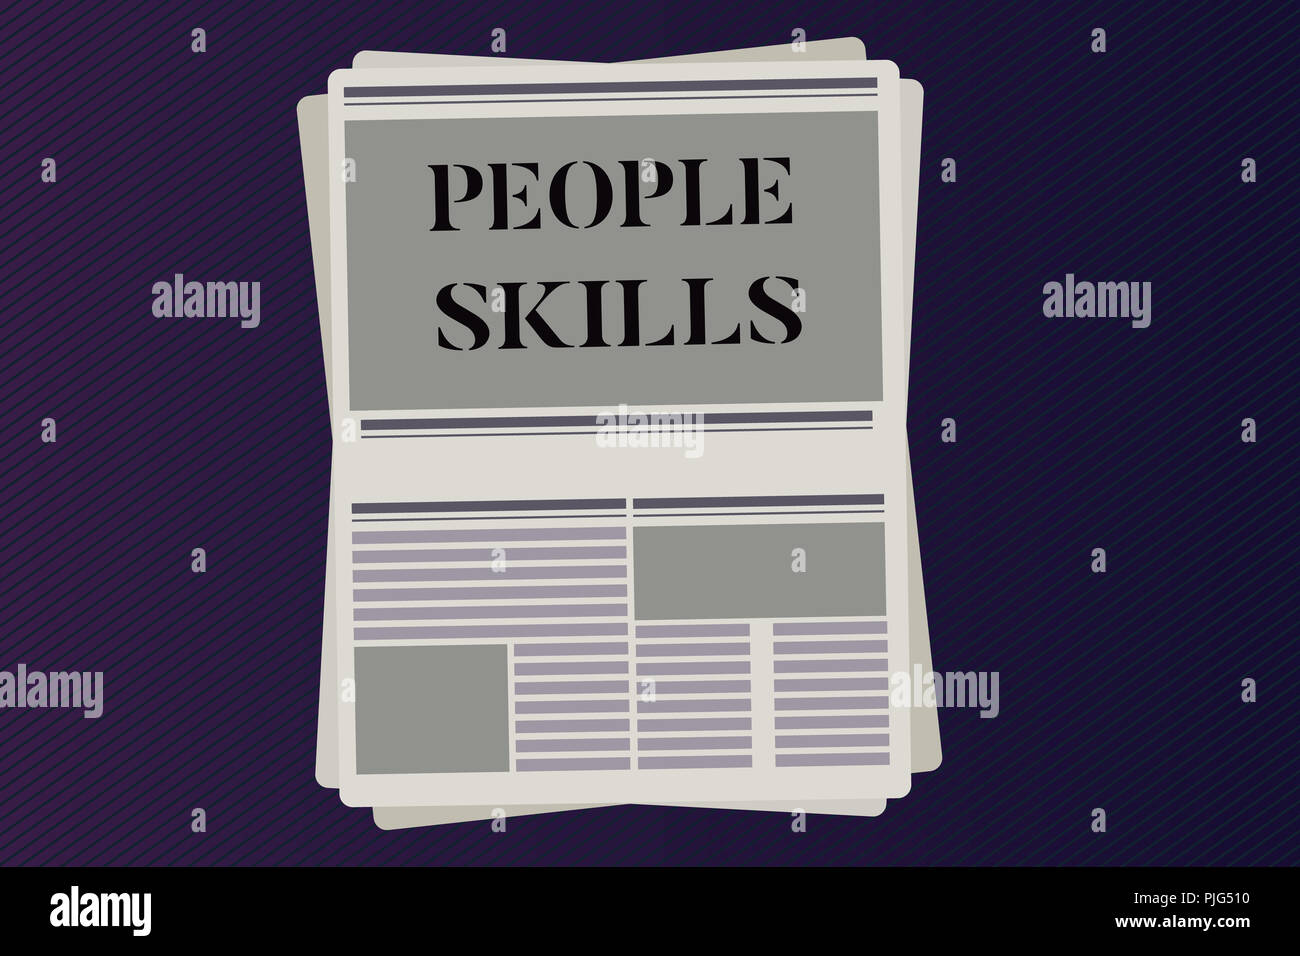 Word writing text People Skills. Business concept for Get Along well Effective Communication Rapport Approachable. - Stock Image